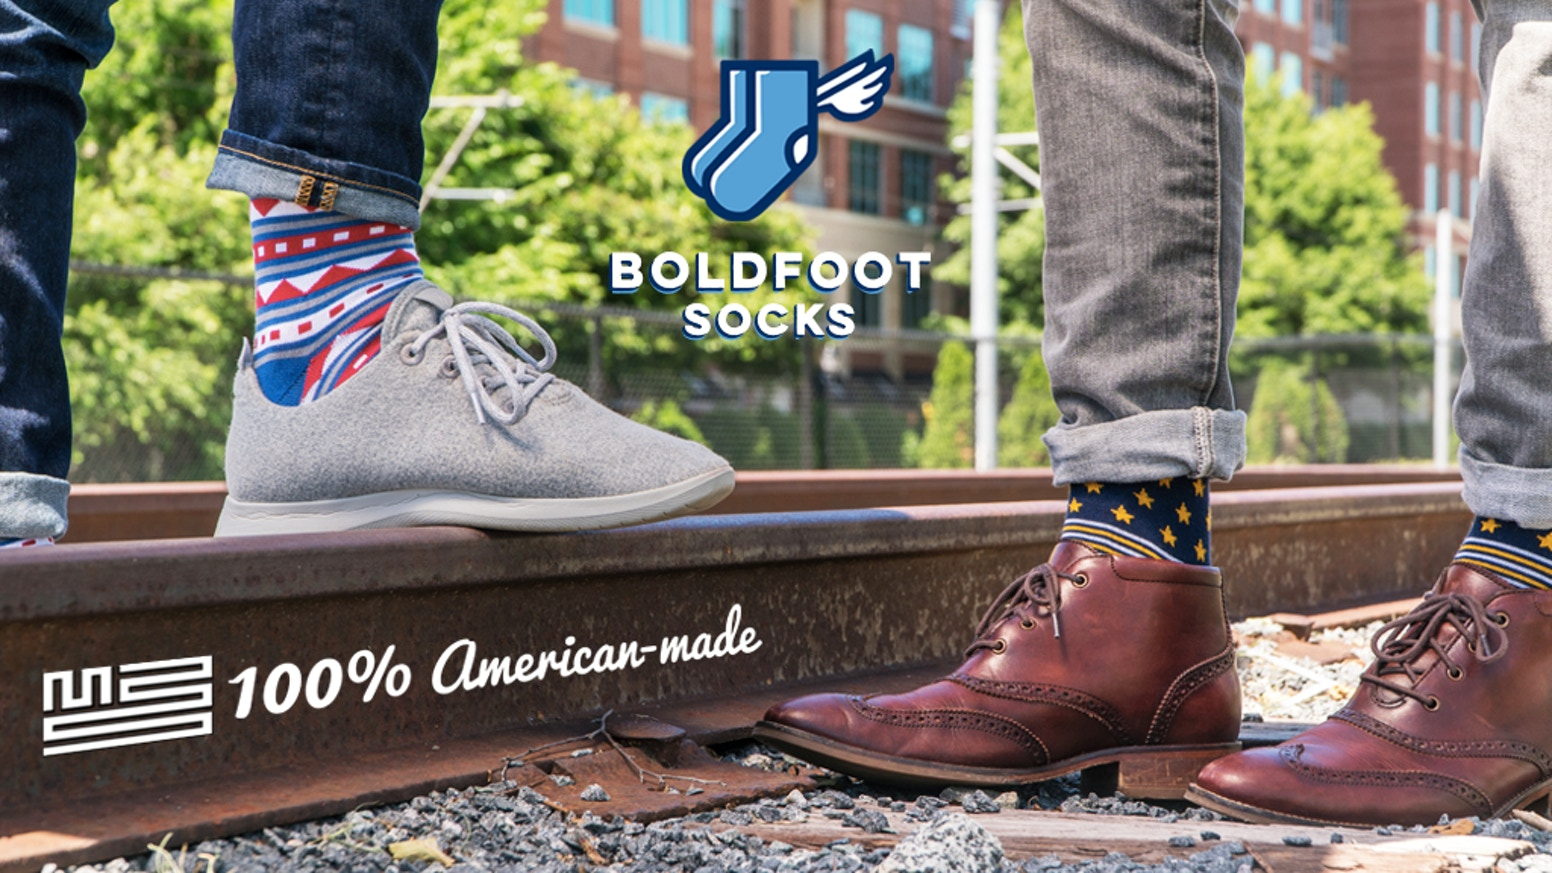 Boldfoot 2.0, our FIVE star reviewed, high quality Made in USA socks in NEW colors + designs, Women's + XL Men's sizes & now Athletics!